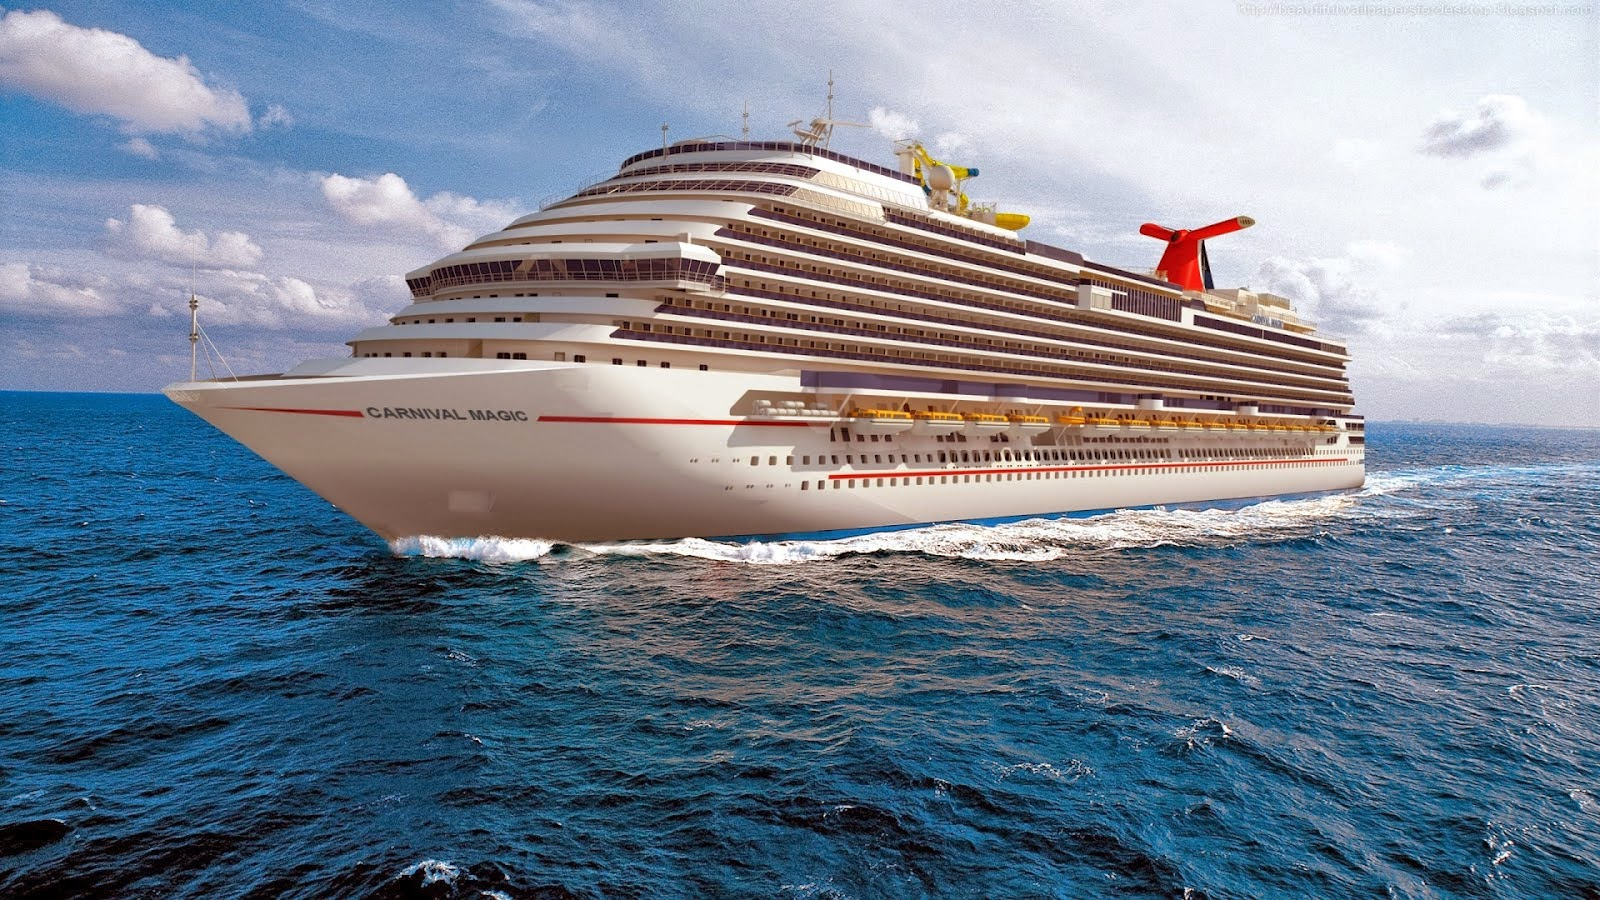 Cruise Ship Wallpapers HD  Image Wallpapers